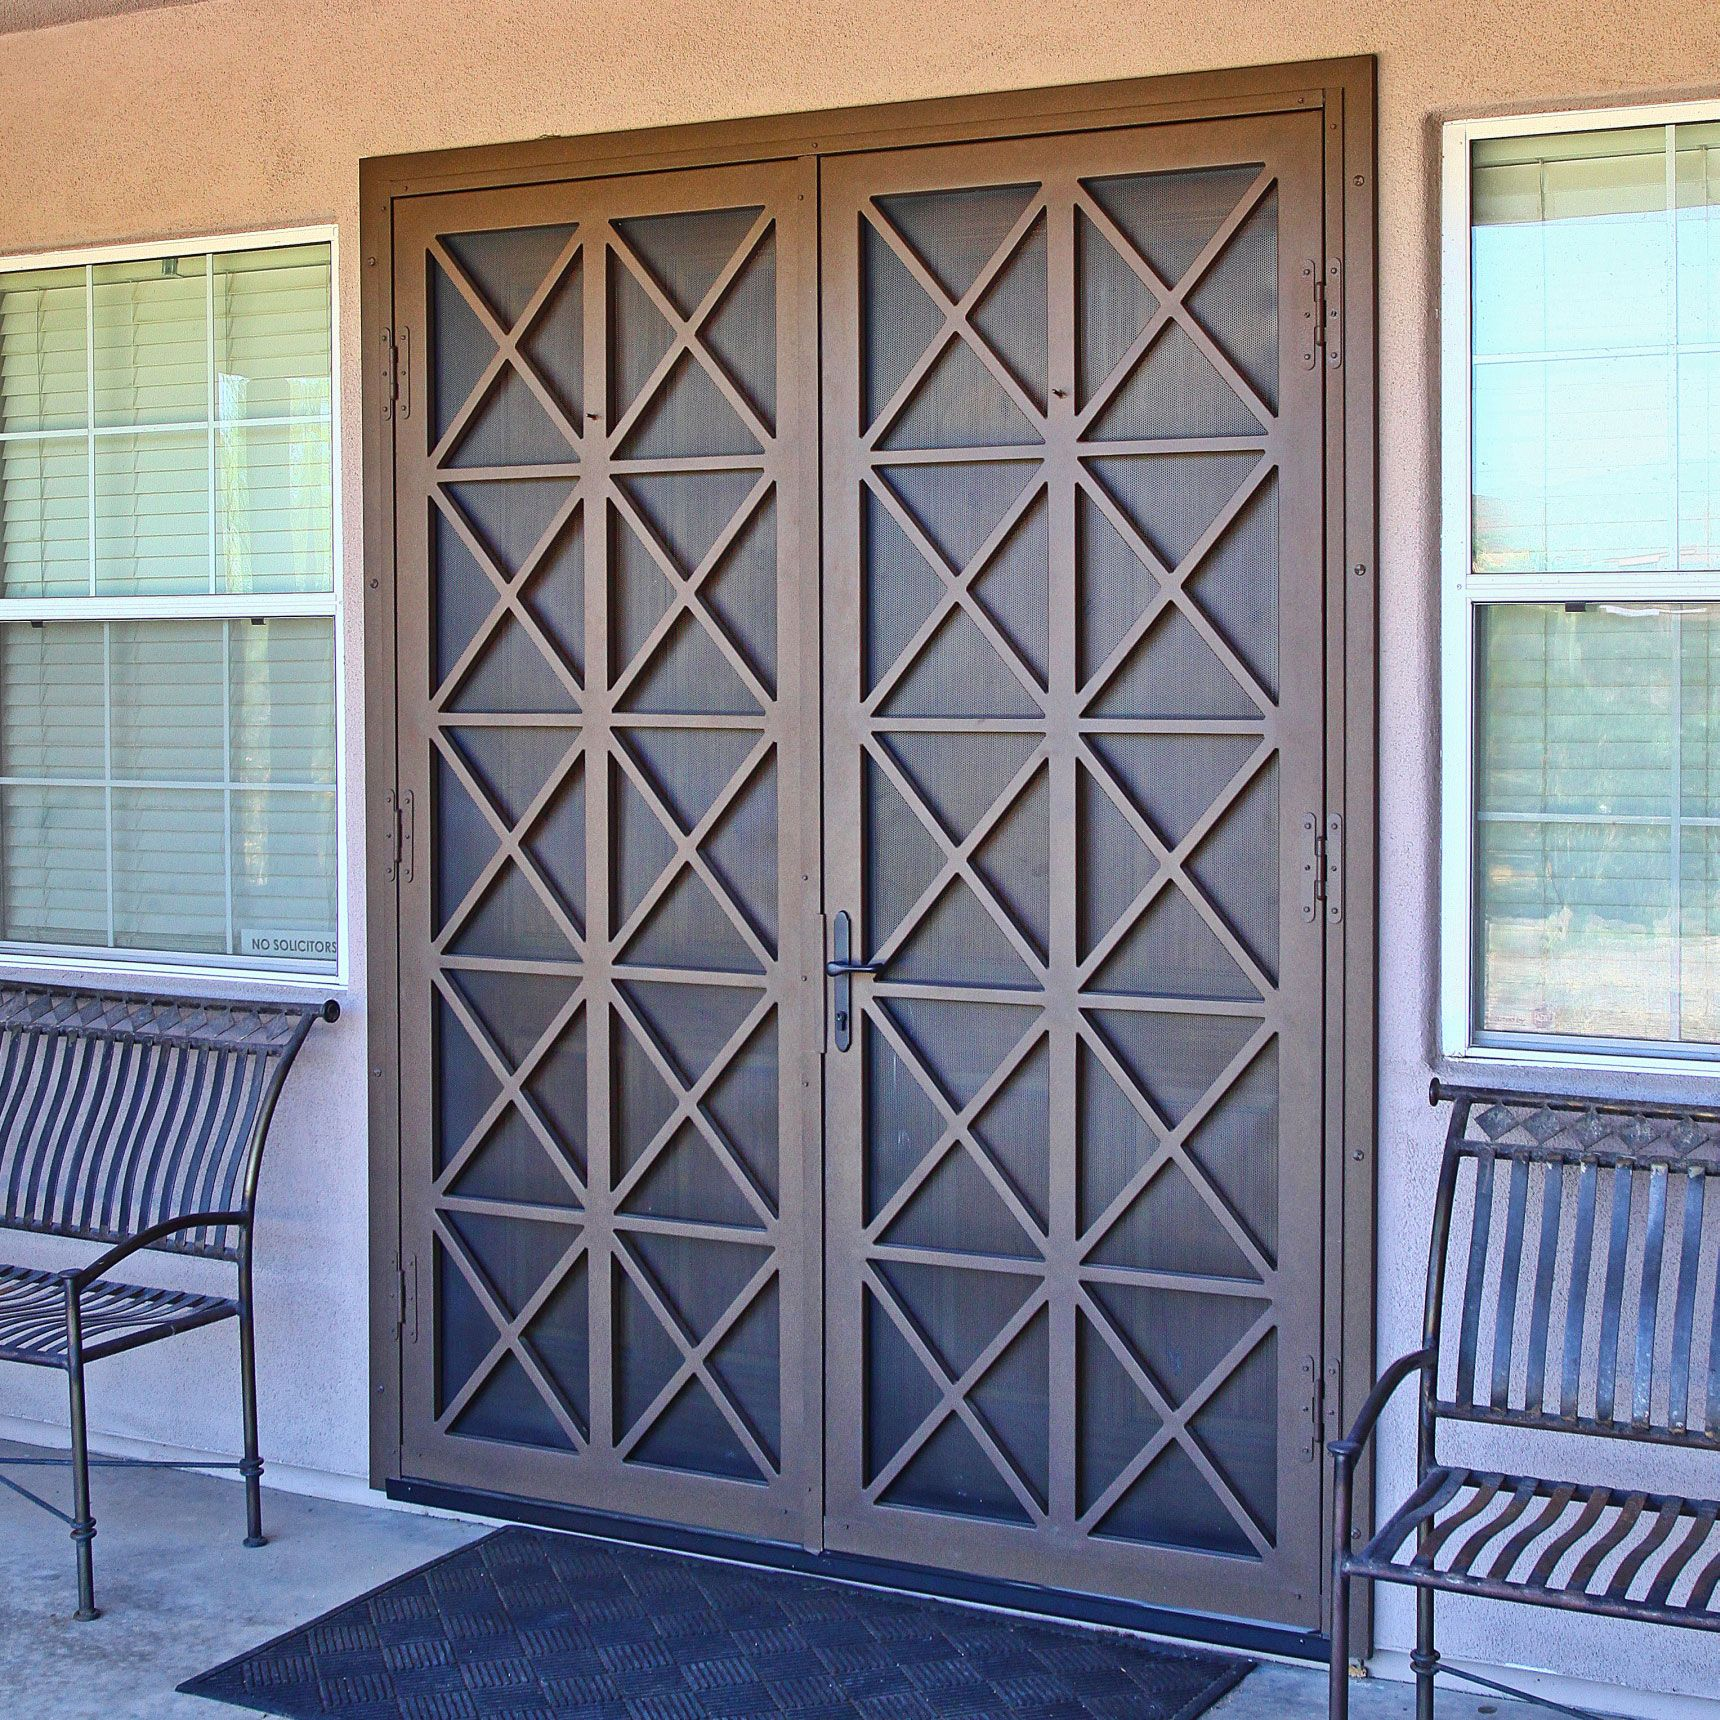 Alexon french security screen doors with images french